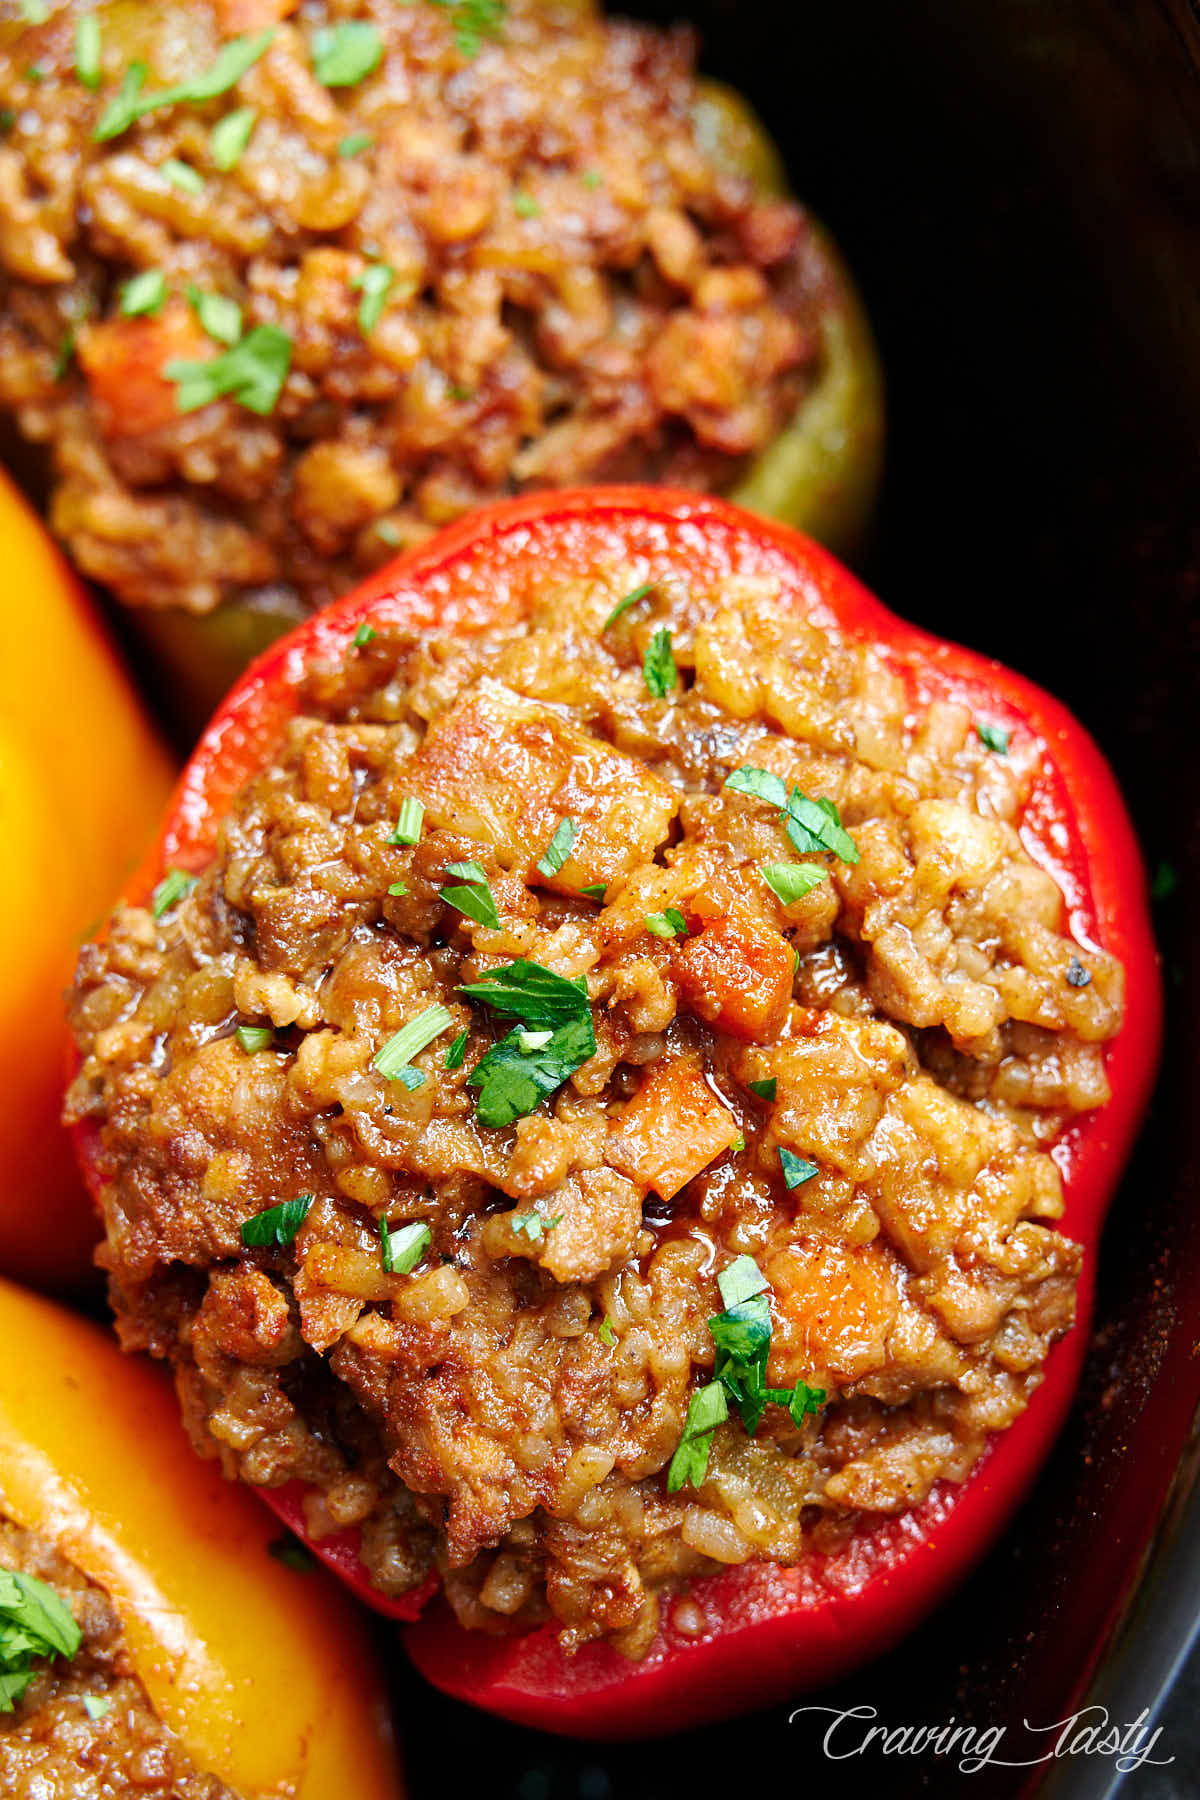 Red bell pepper stuffed with minced meat and garnished with chopped parsley.